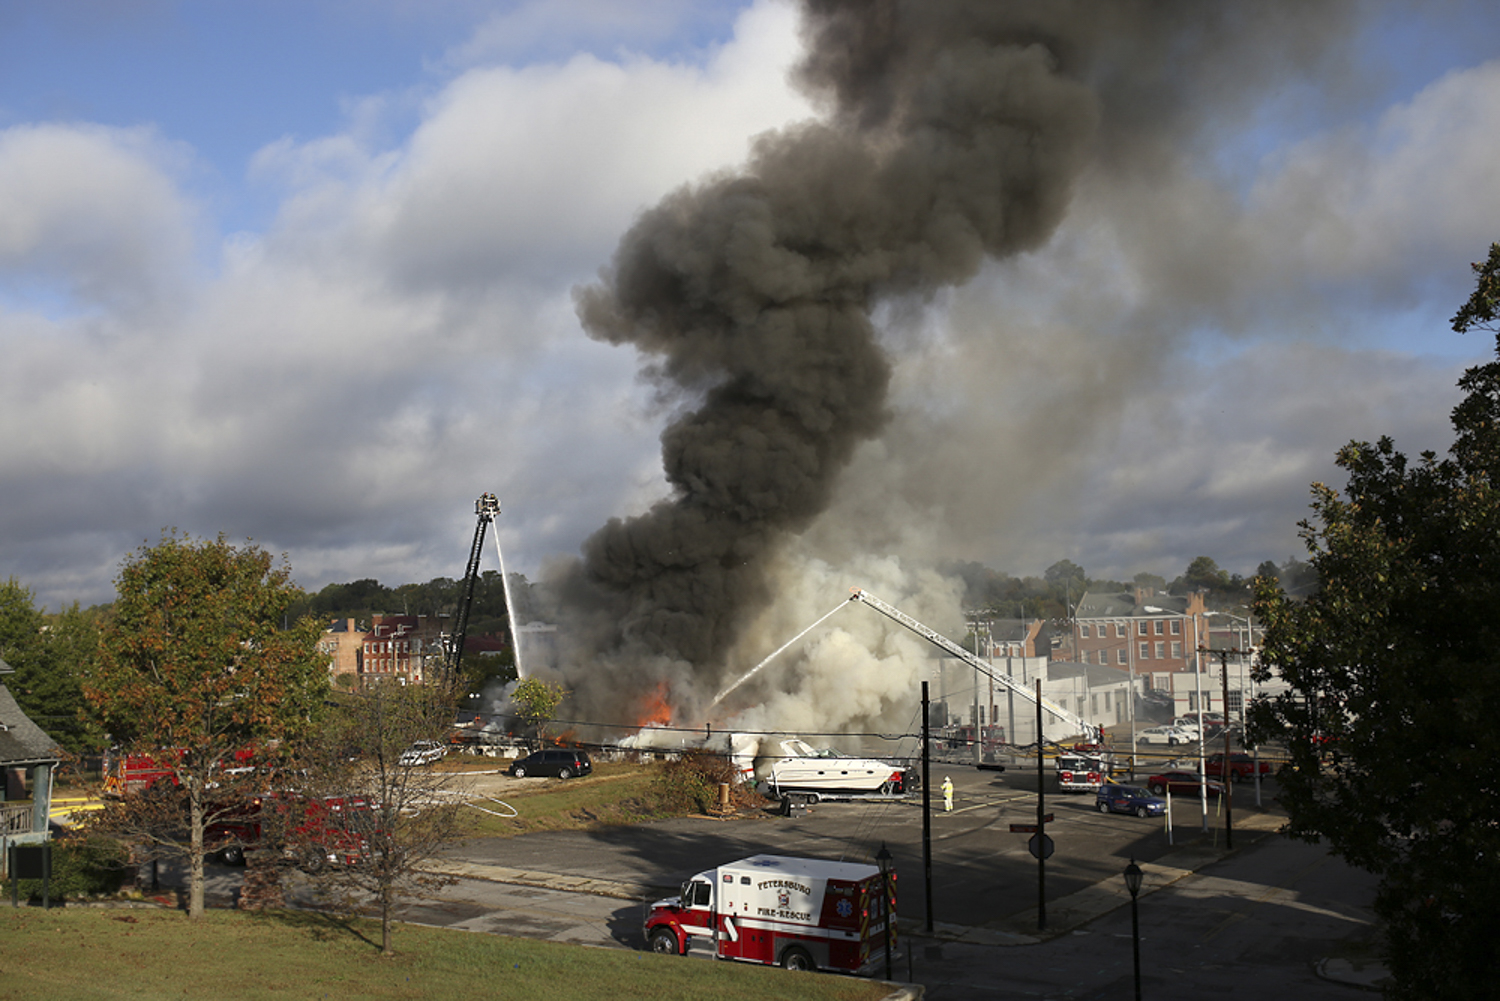 Petersburg firemen fight a blaze that leveled the Hotsy small engine repair building on Bank Street in Petersburg on Tuesday, Oct. 24, 2017. [Scott P. Yates/progress-index.com]